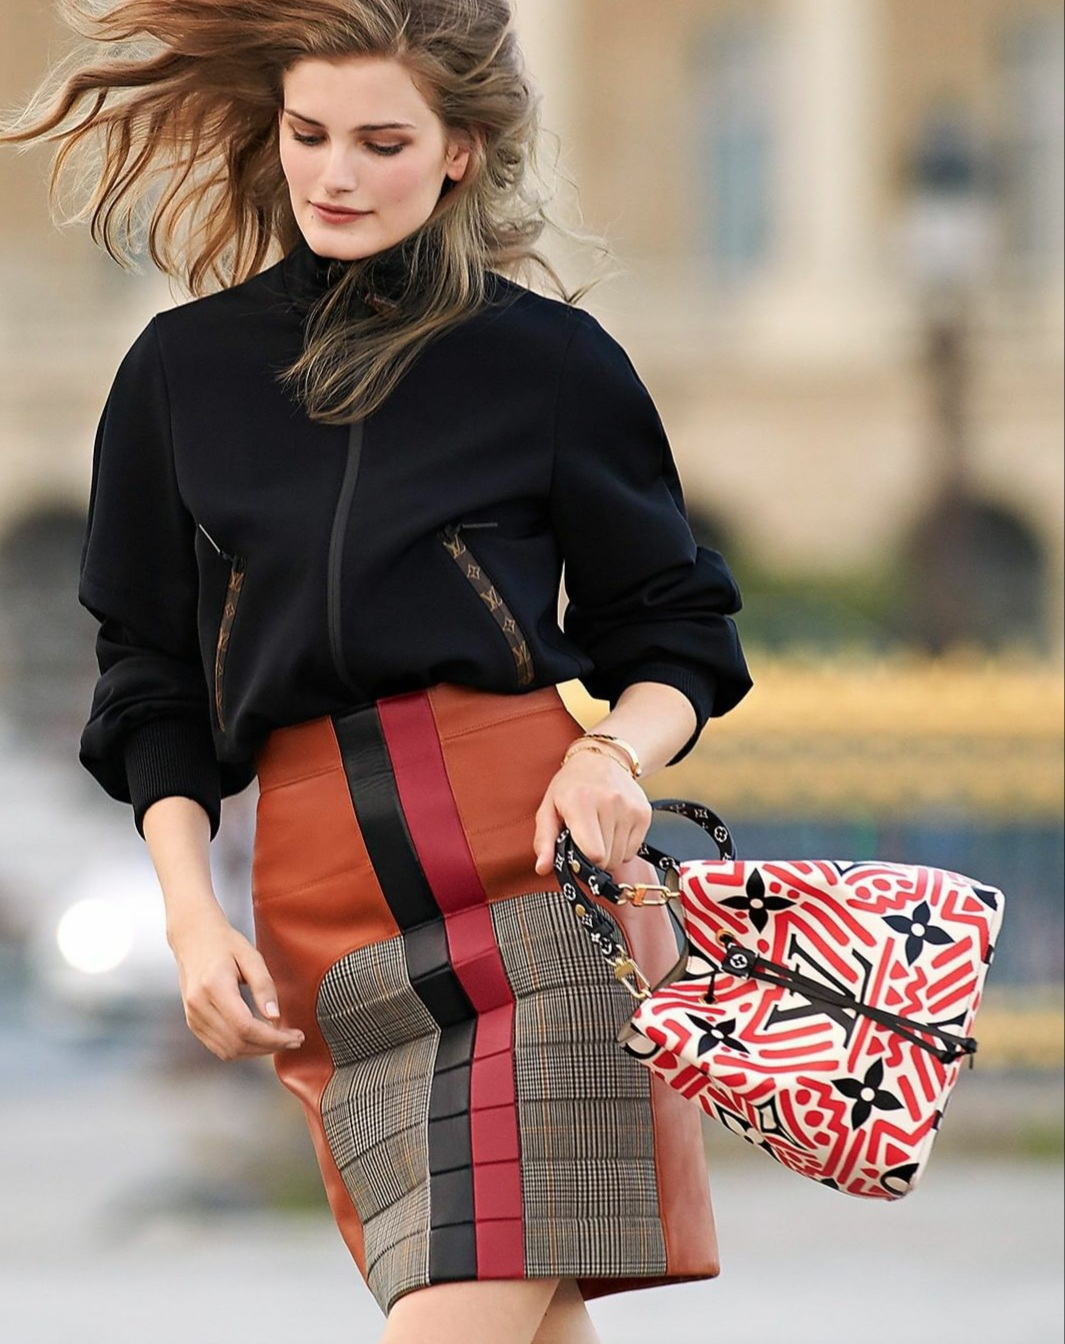 Red handbags and shoulder bags